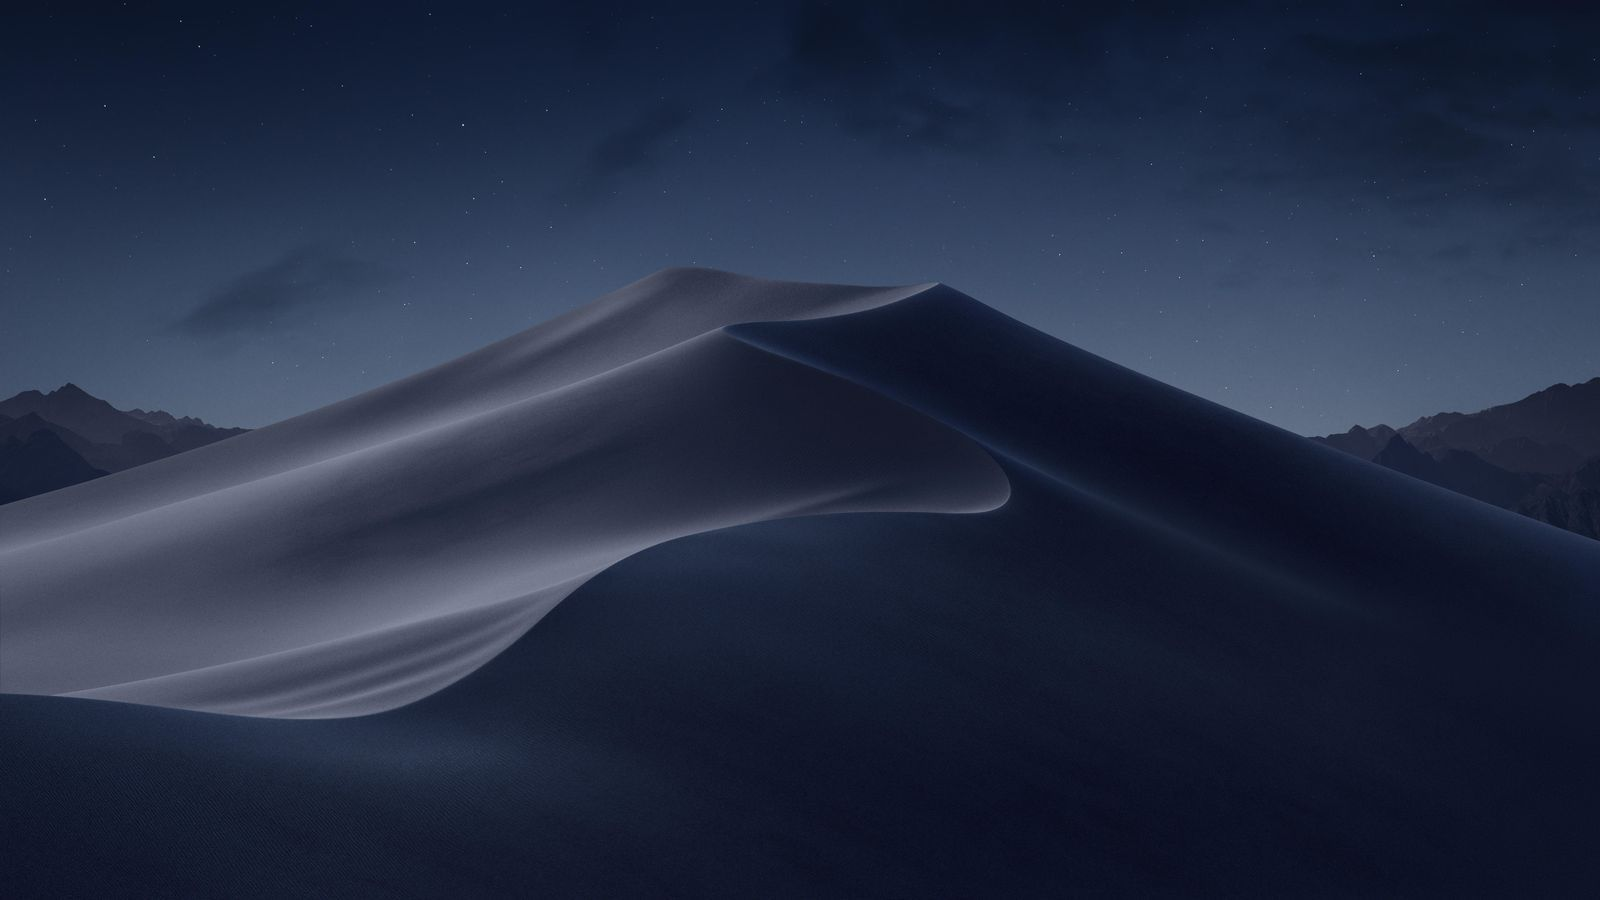 Macos Mojave 10 14 Has Arrived How To Download Best New Features And More Mac Os Wallpaper Os Wallpaper Mac Wallpaper